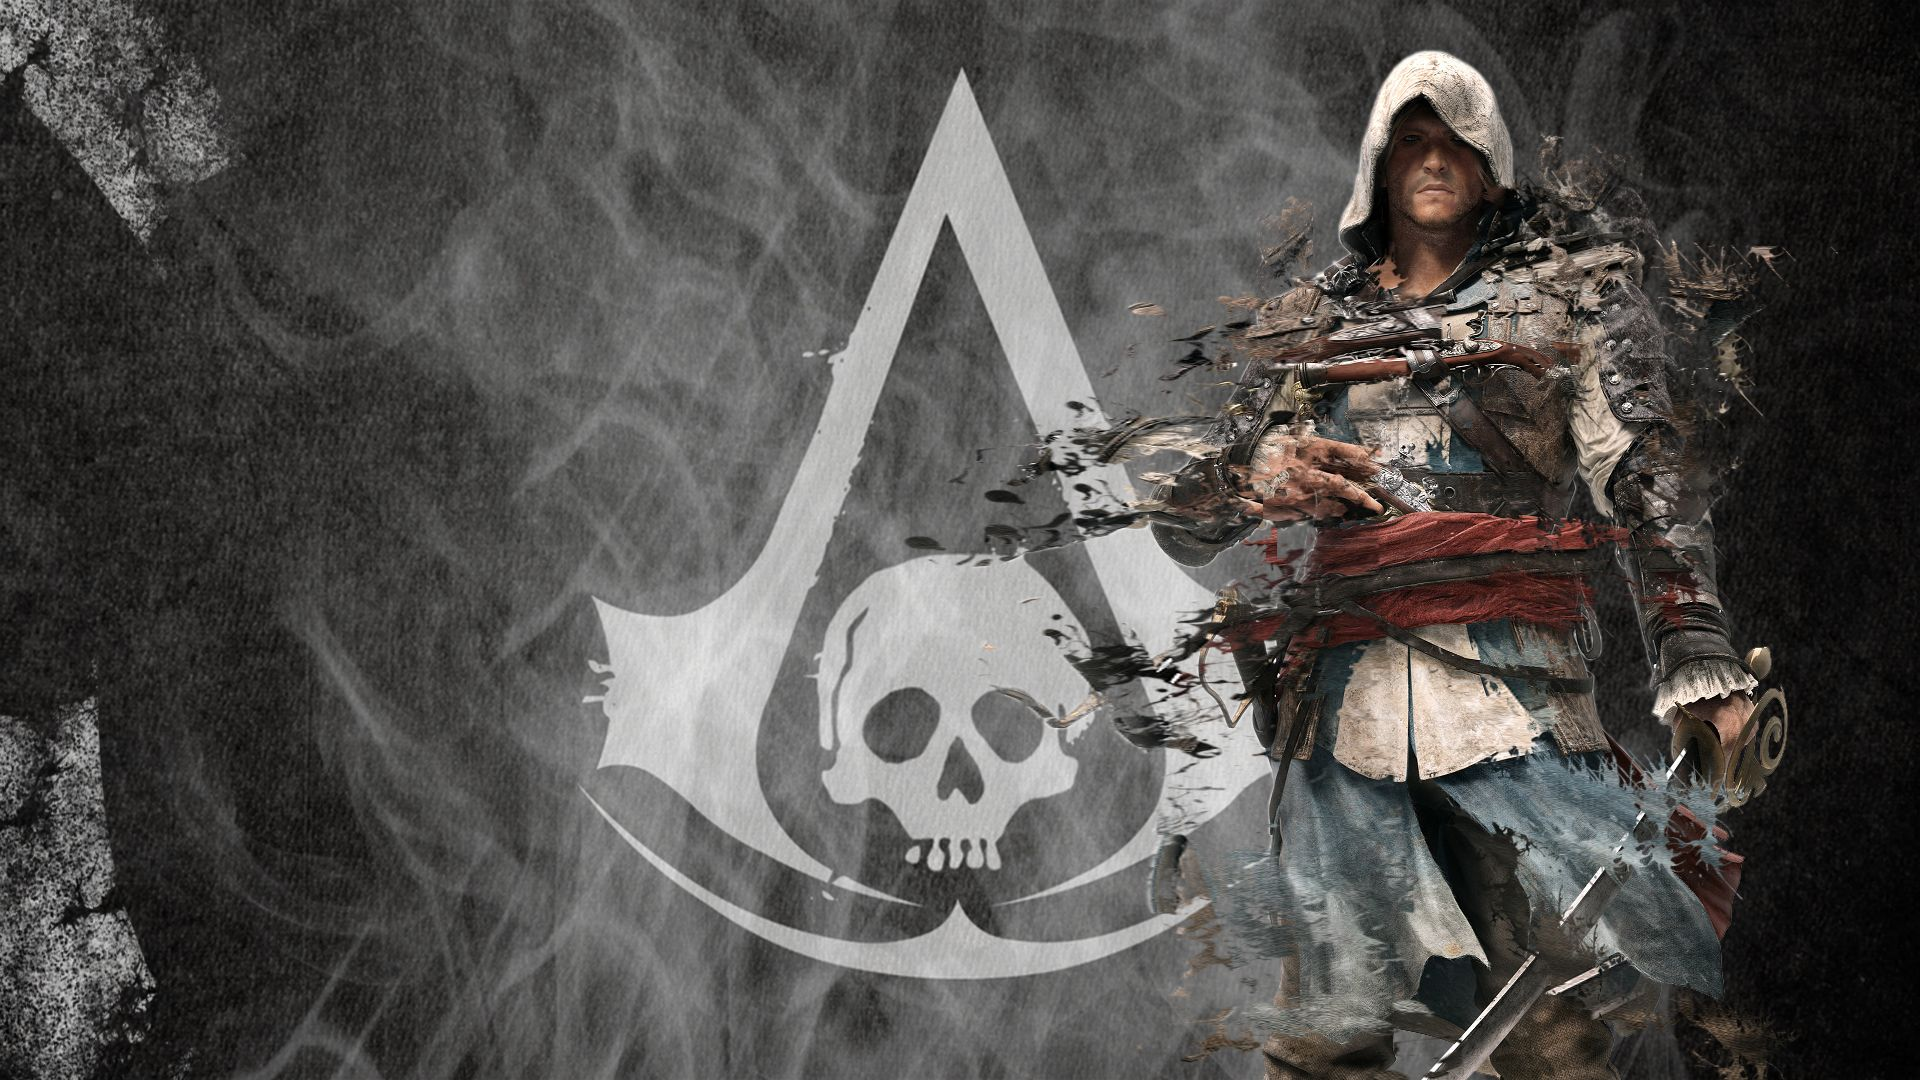 Assassins Creed Wallpaper Hd August Ps Plus Games 2018